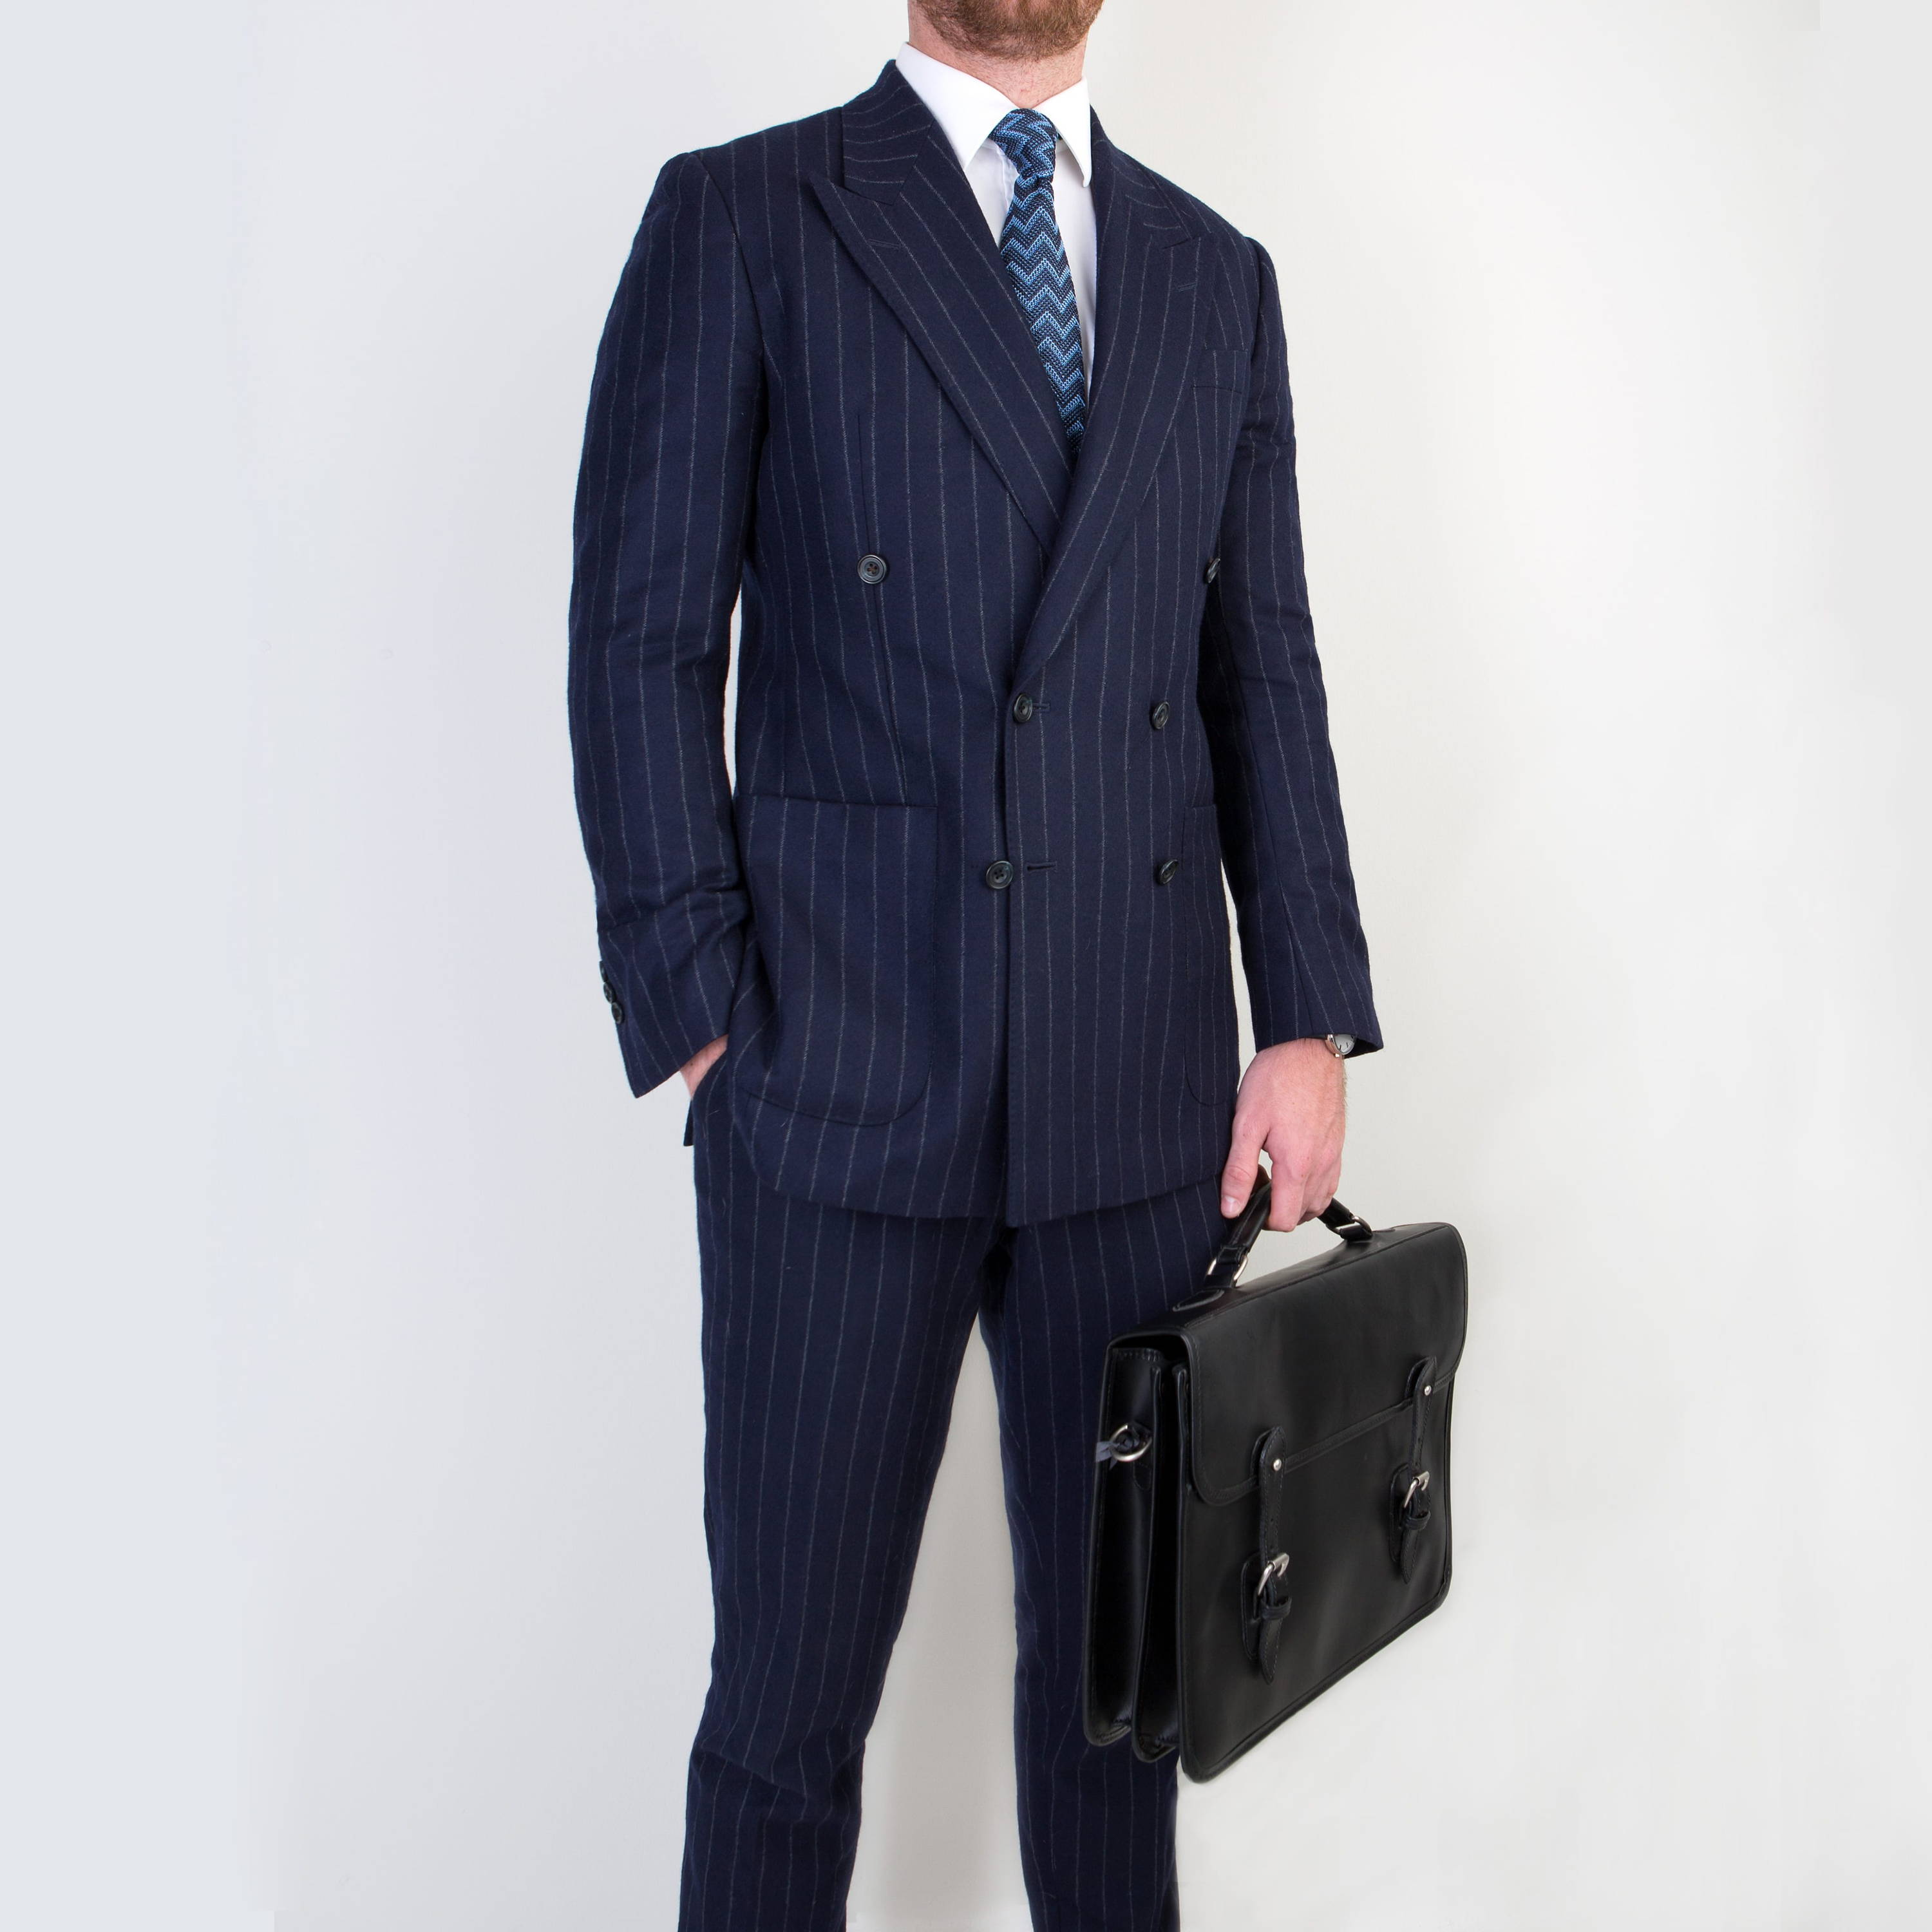 Bespoke tailors Mullen & Mullen double breasted business suit